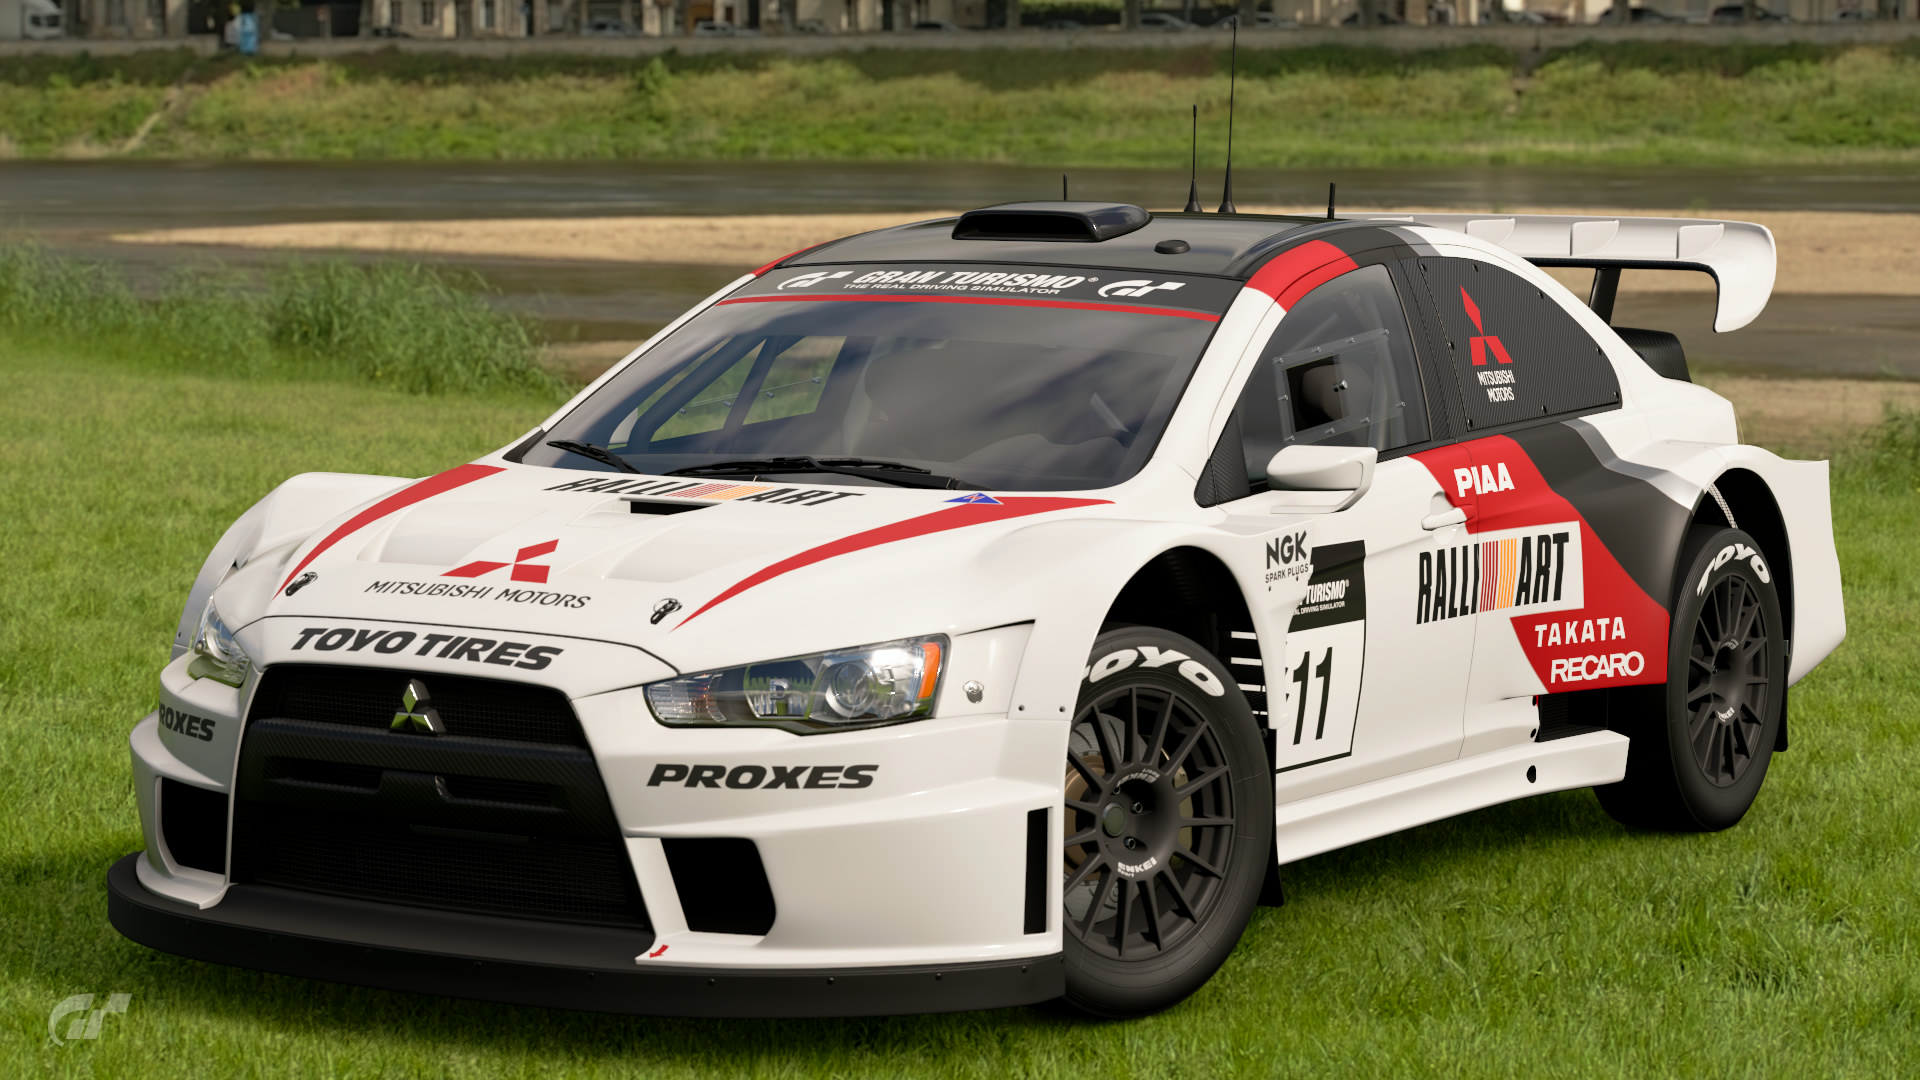 Mitsubishi Lancer Evolution Final Edition Gr.B Rally Car | Gran ...